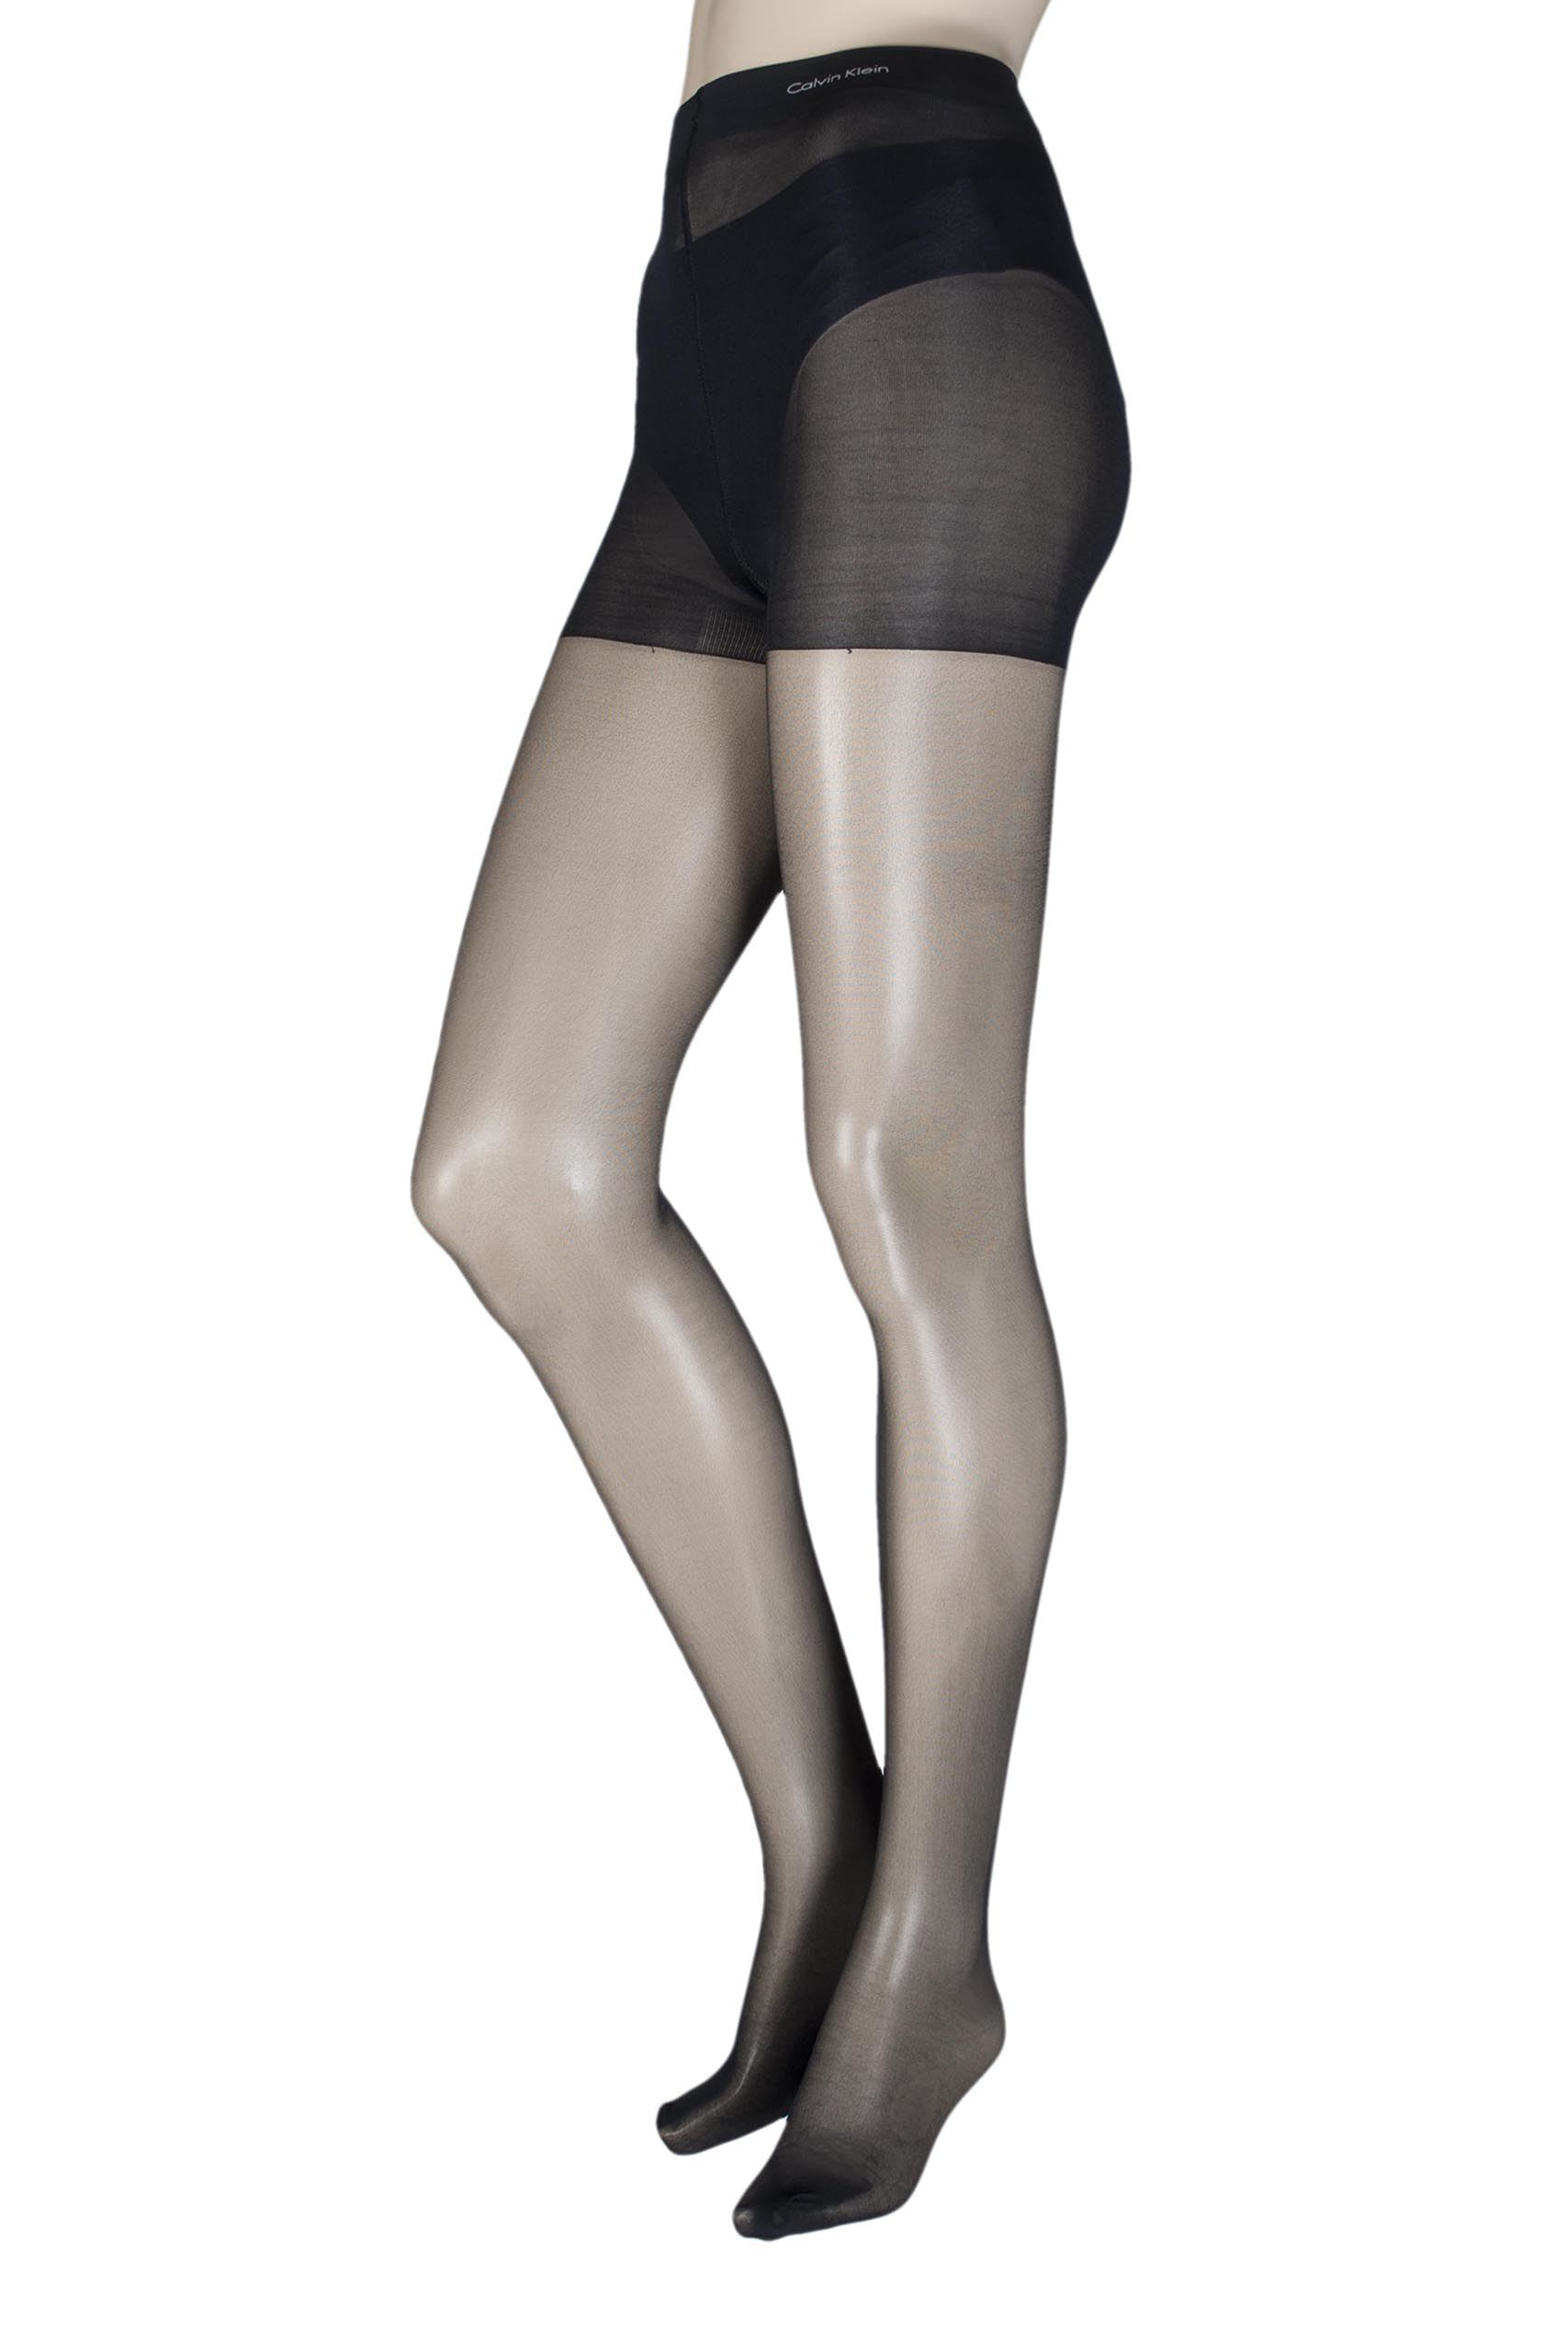 Image of 1 Pair Black Sheer Essentials 15 Denier Tights Ladies Large - Calvin Klein